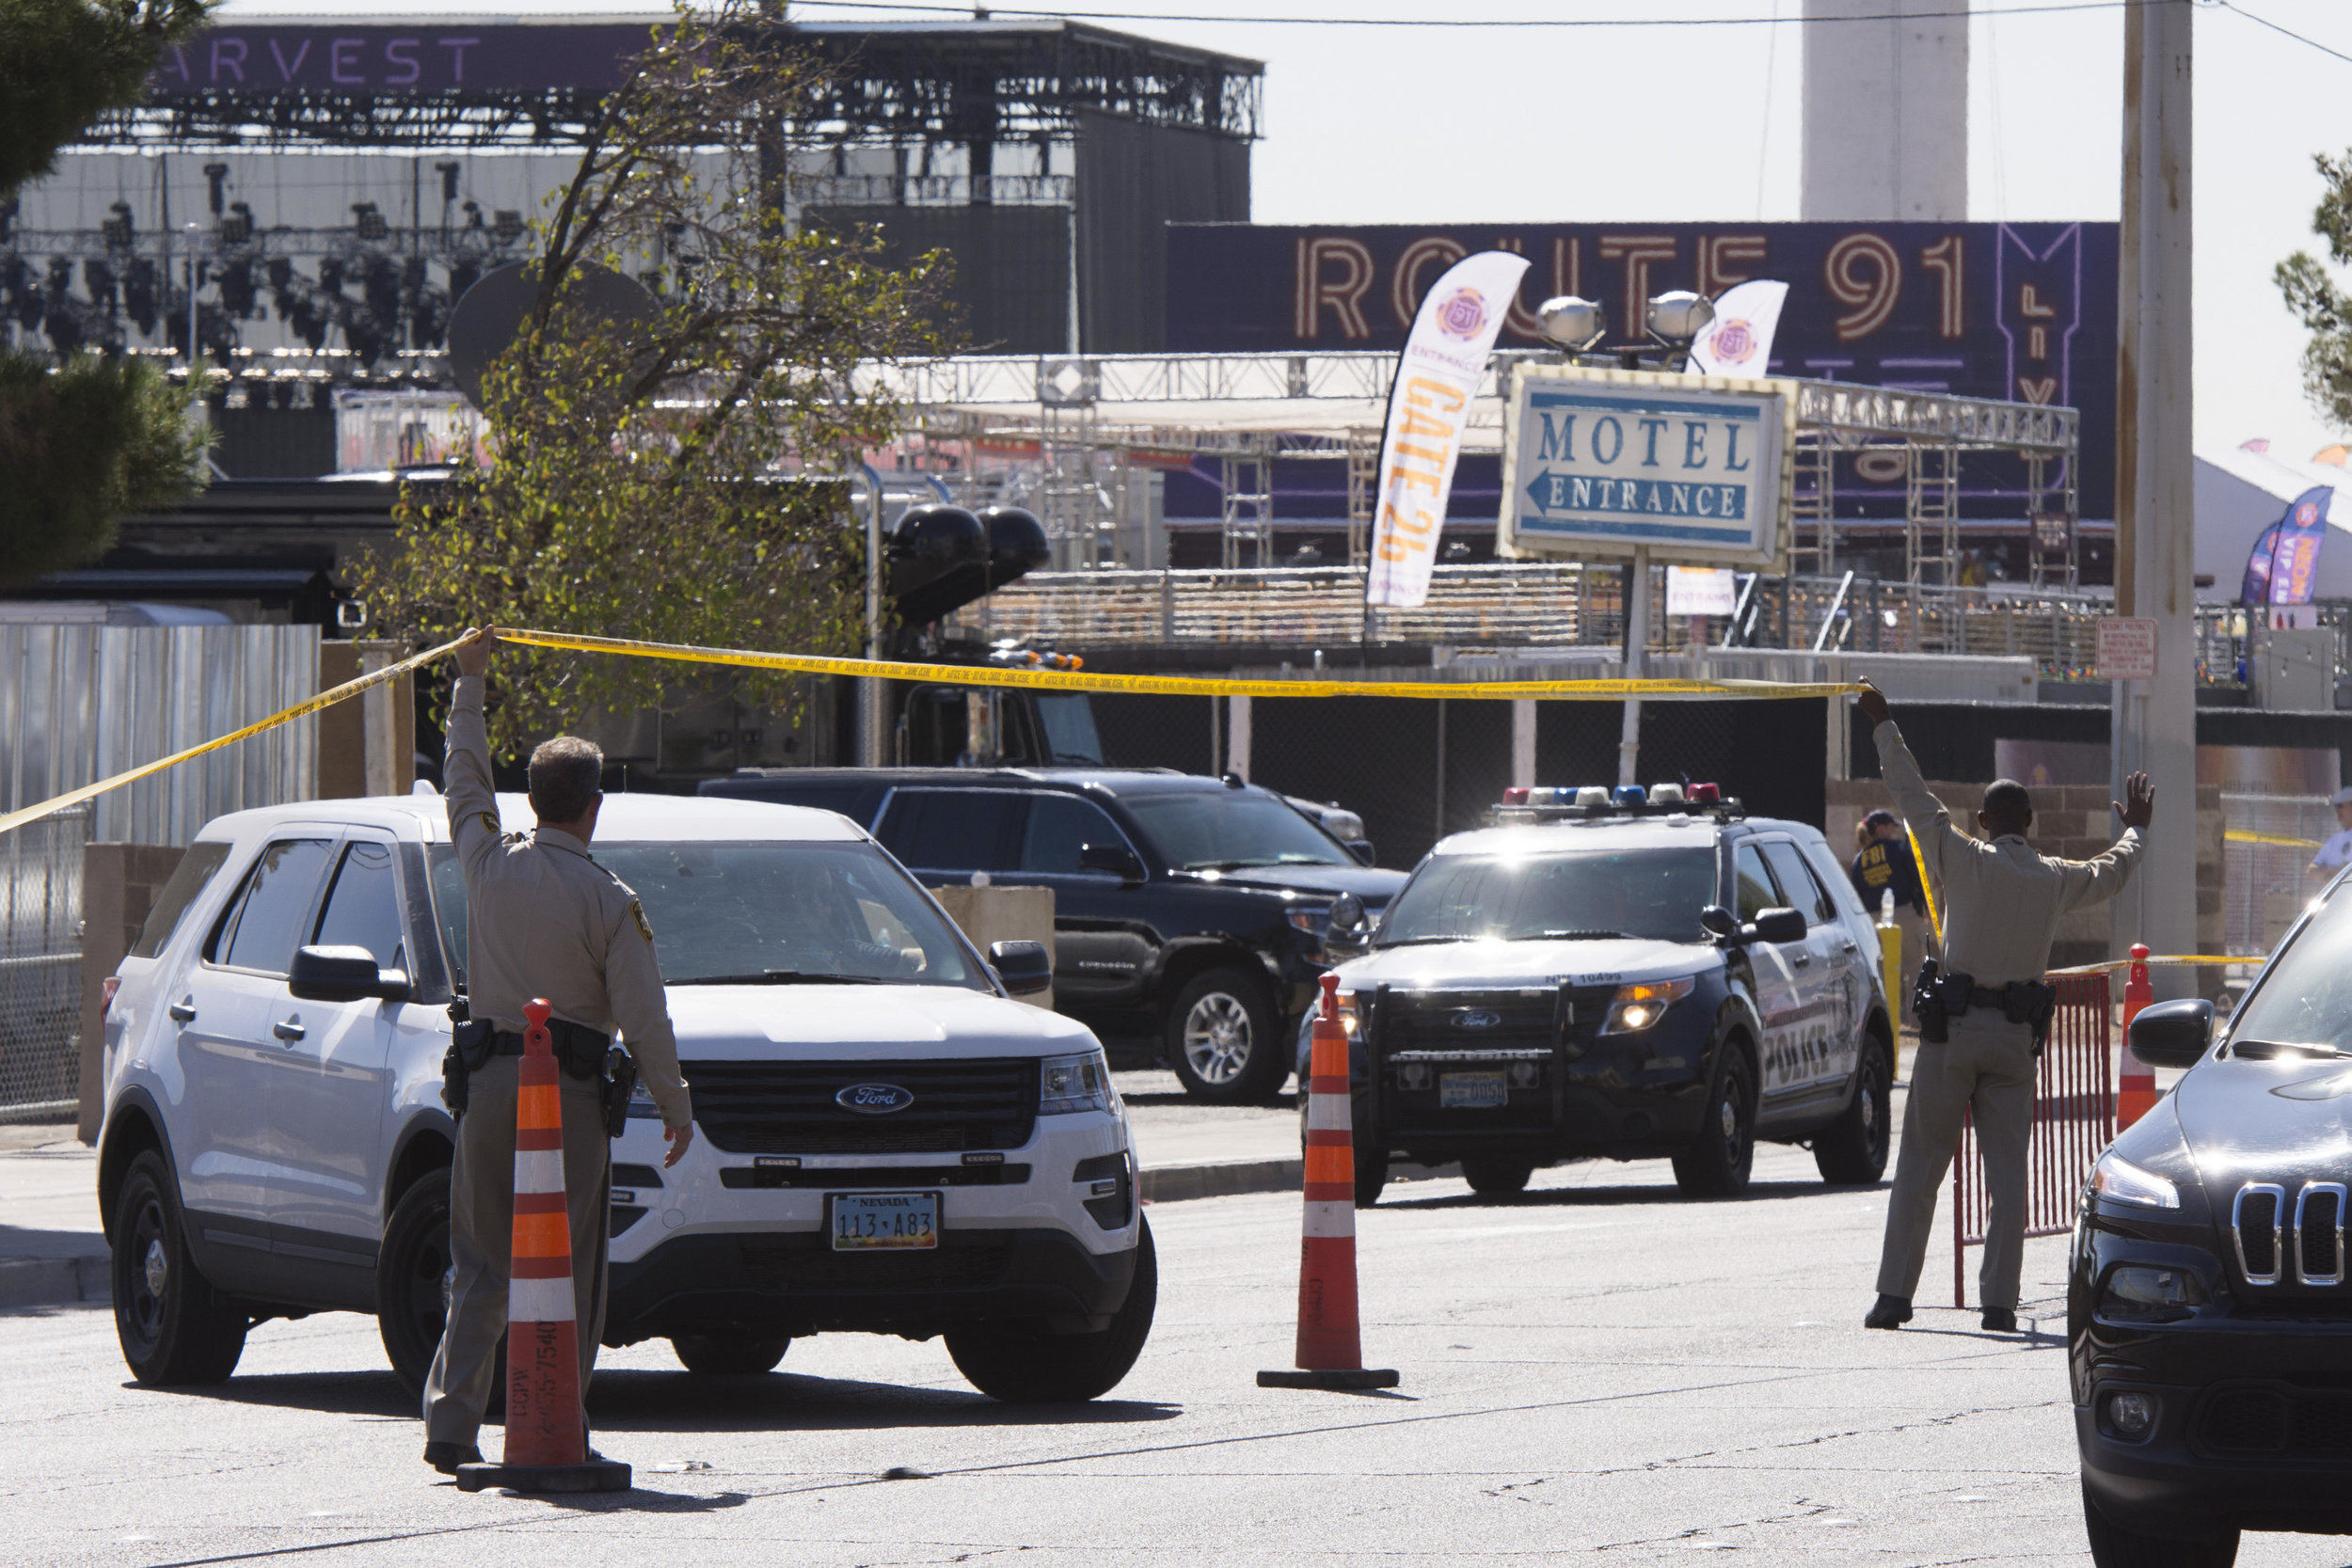 Las Vegas Police work following the Route 91 Harvest Country Music Festival mass shooting.